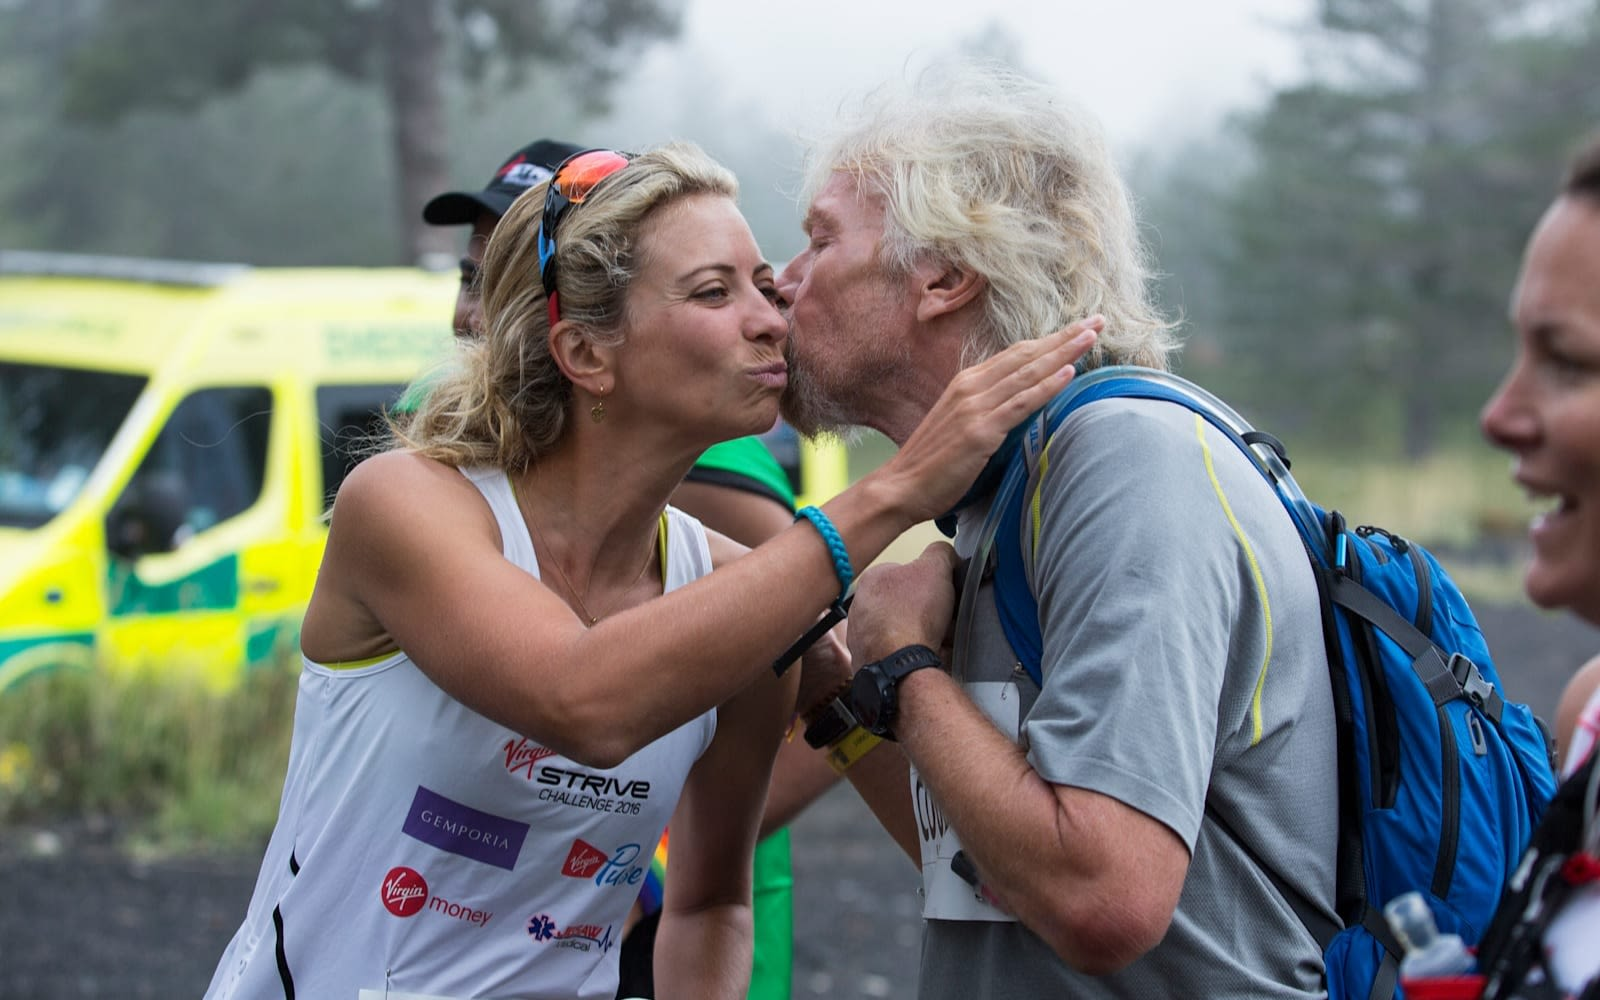 Richard and Holly Branson greet each other on the Strive challenge